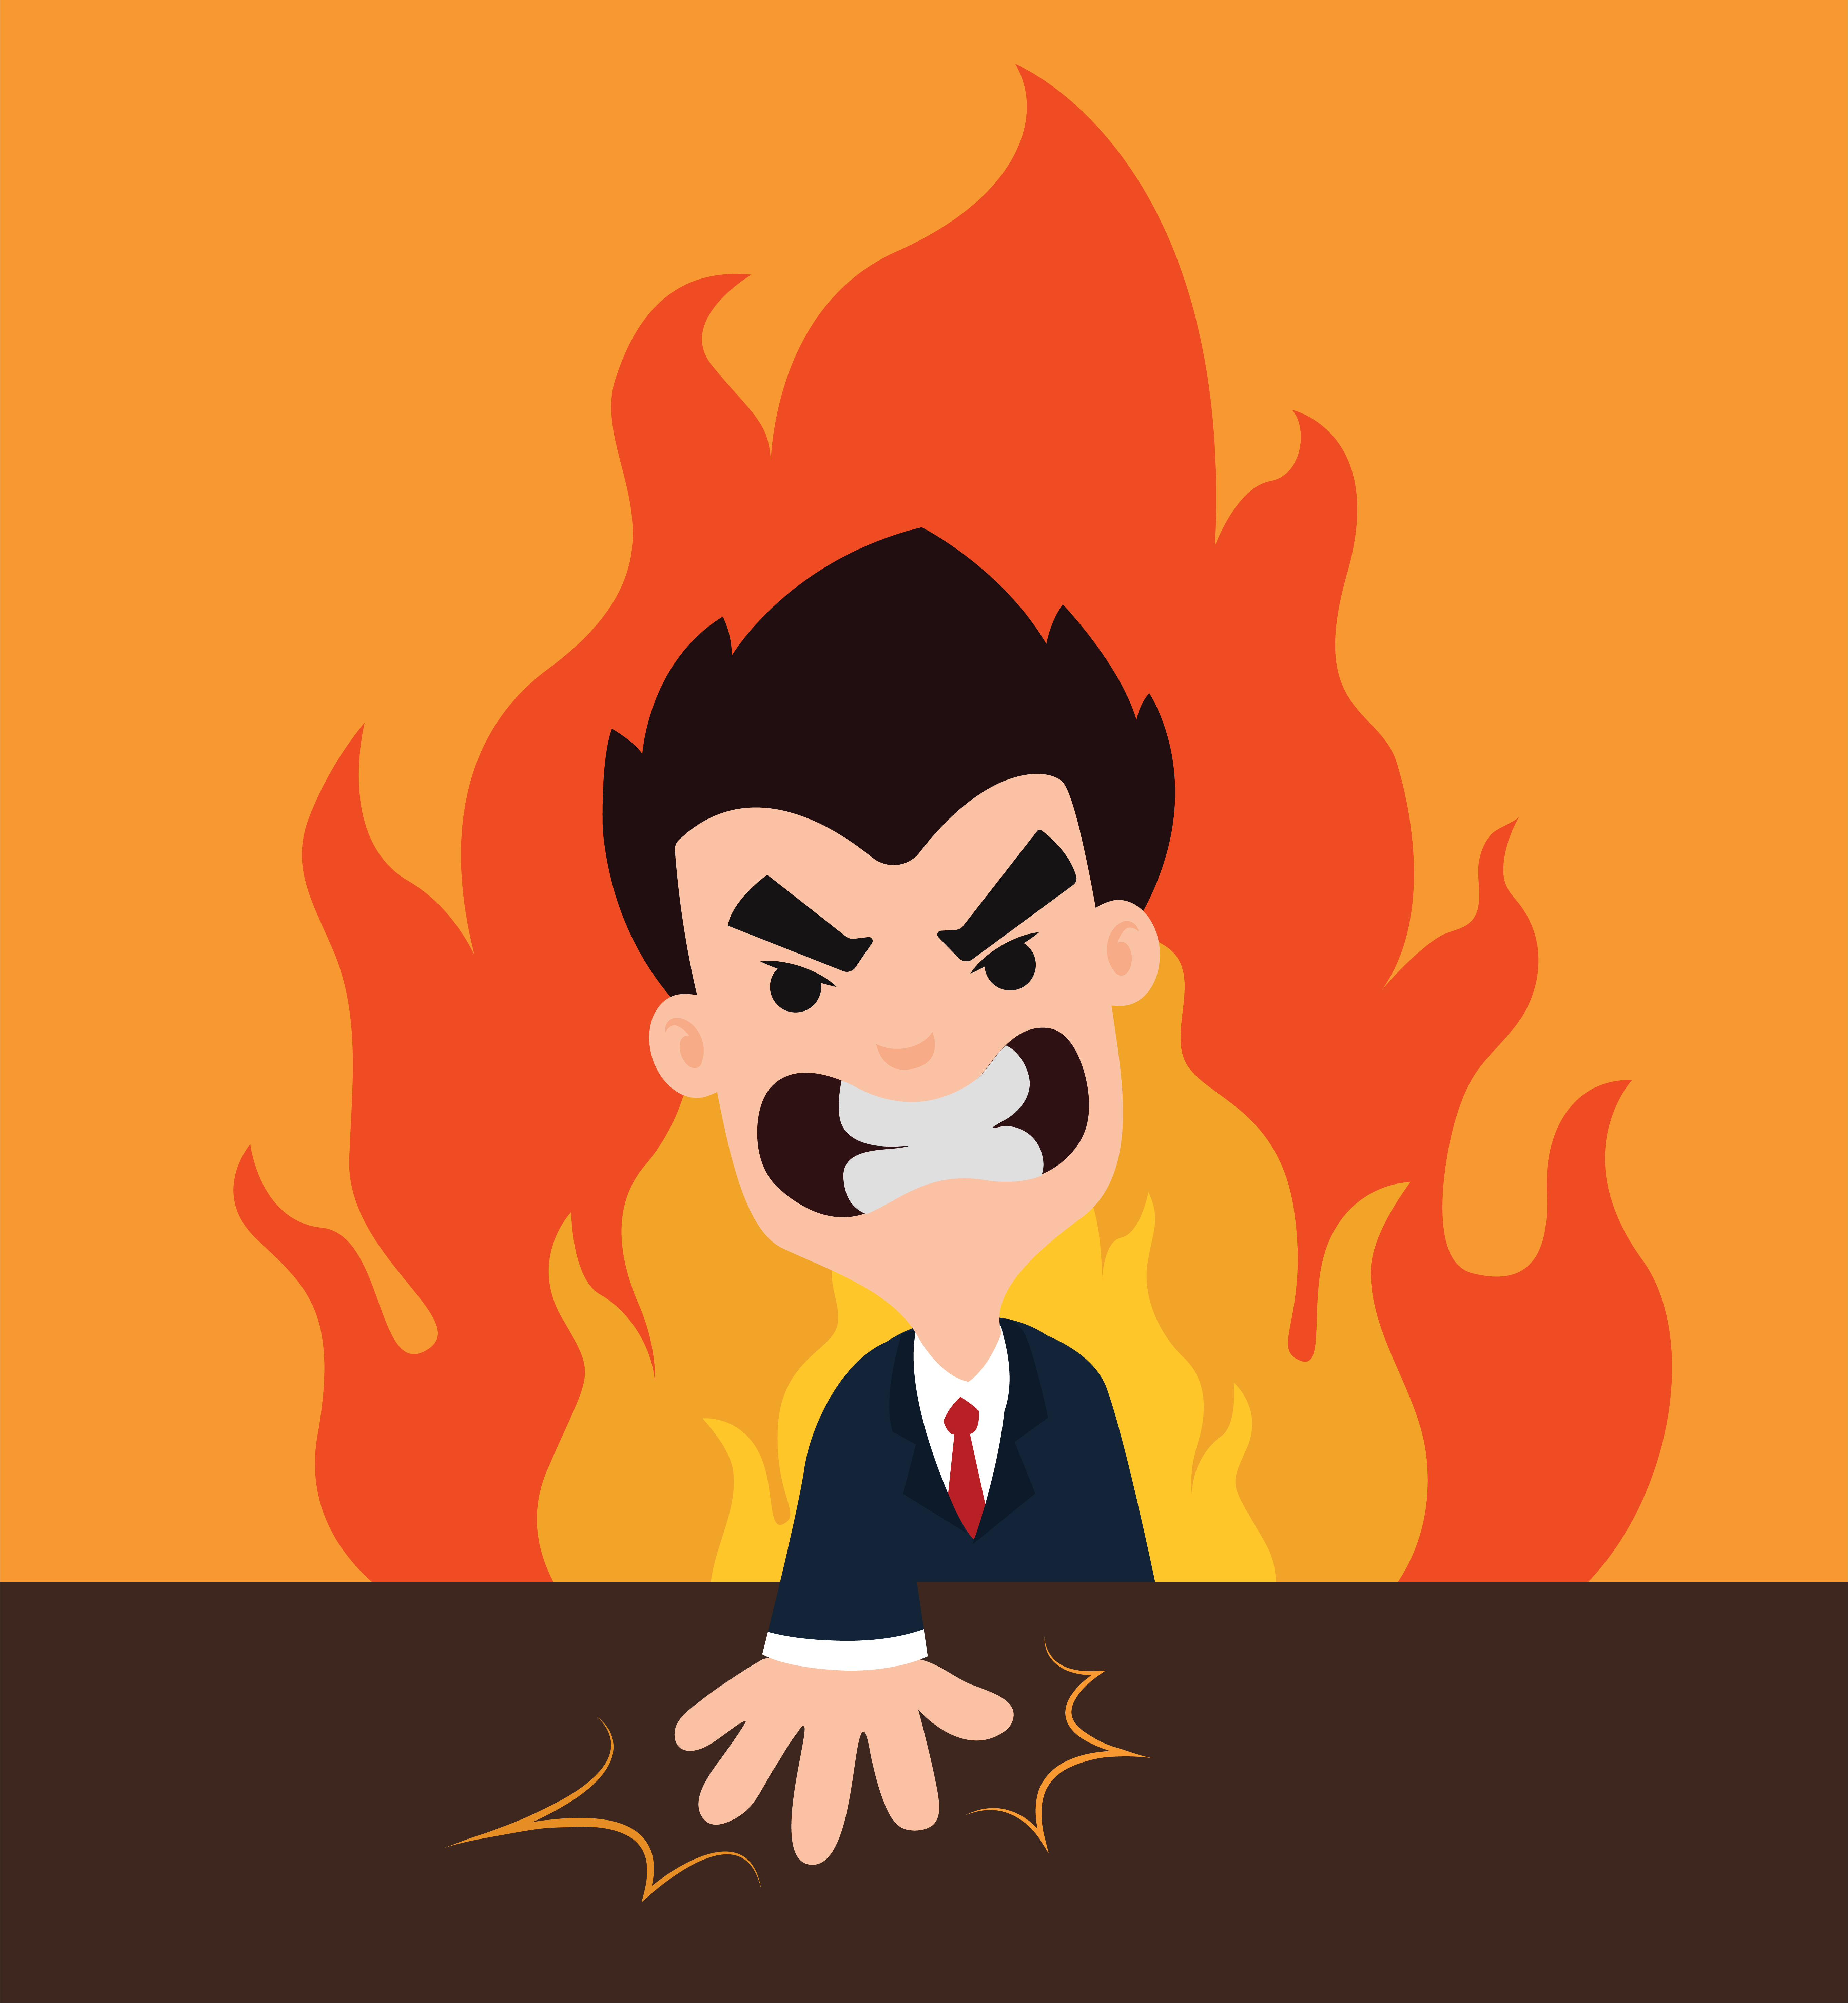 Angry Boss Cartoon Smash The Table Showing Anger With An